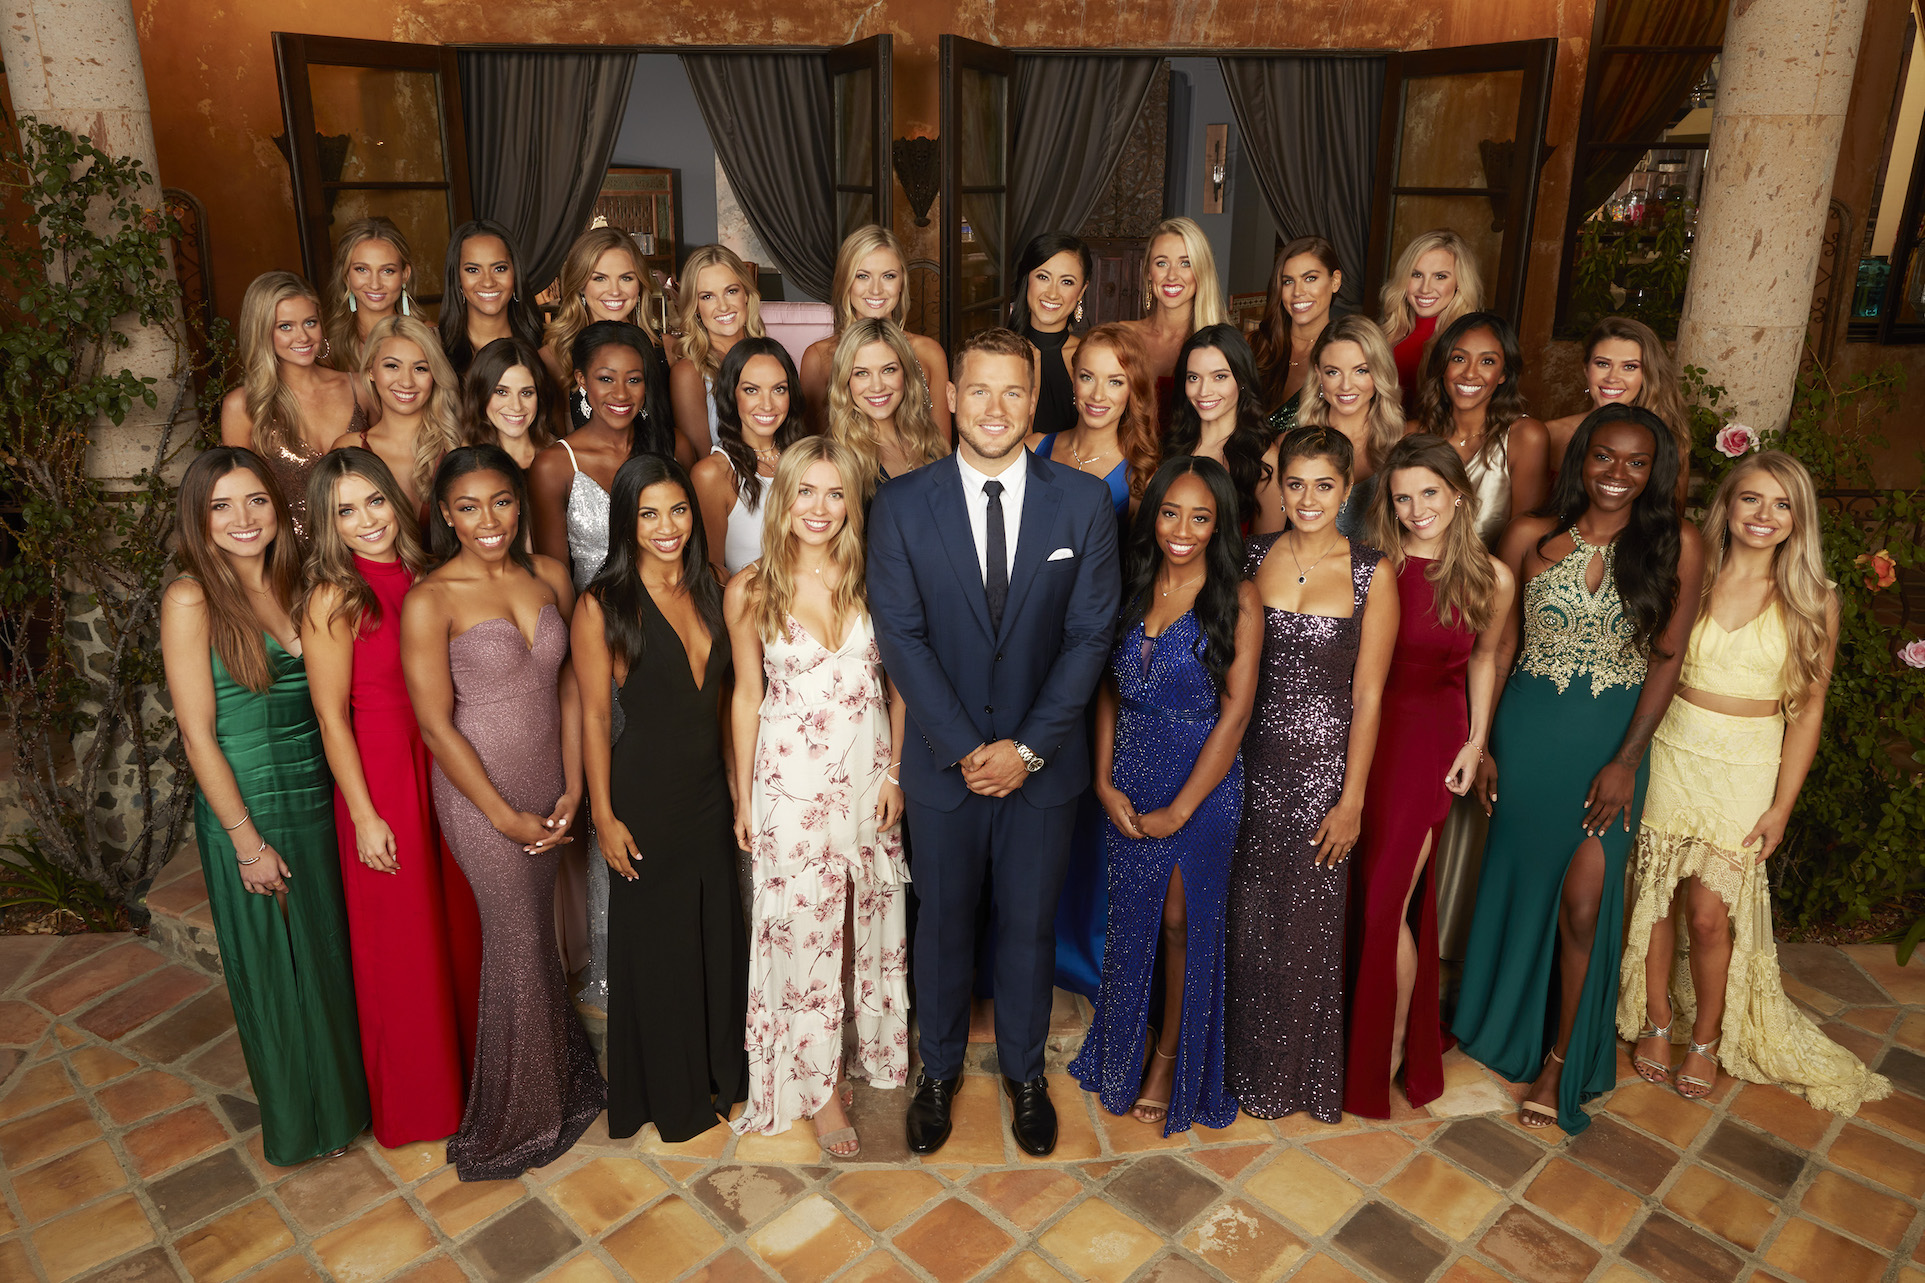 One Bachelor Season 23 Contestant Faked an Australian Accent to Stand Out 38b906a7ed973